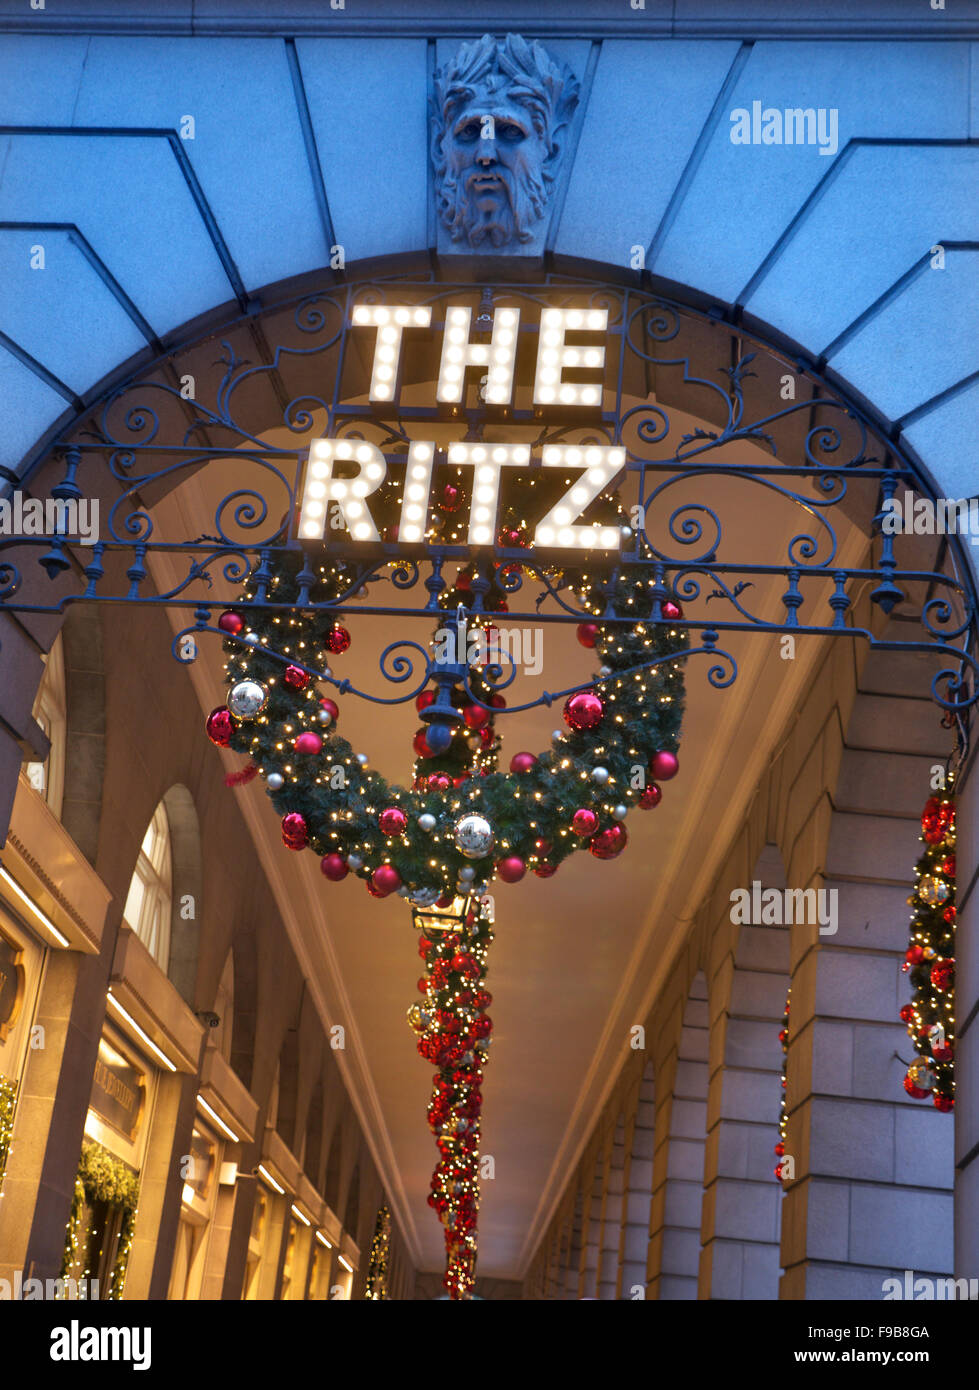 The Ritz Hotel London Piccadilly with traditional decorations at Christmas London UK - Stock Image